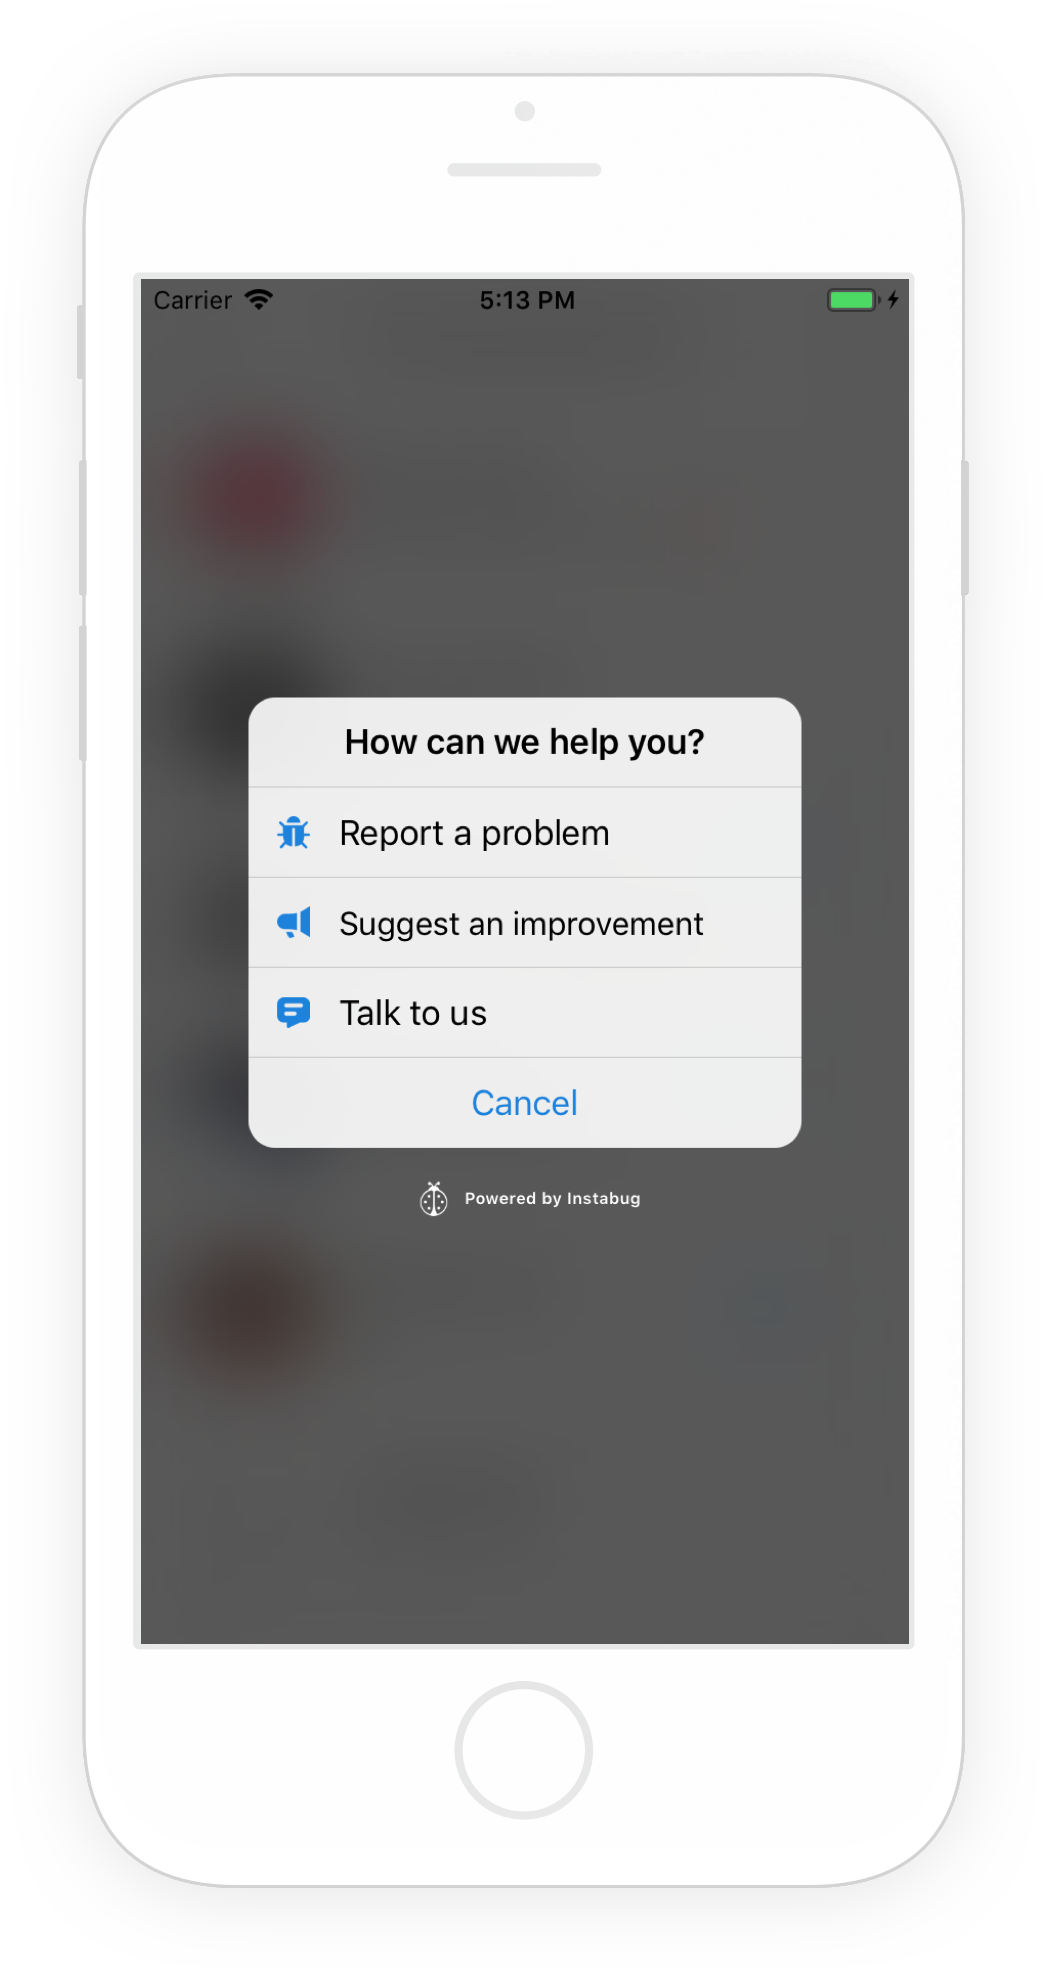 The Prompt Options menu appears when Instabug is invoked in your app.